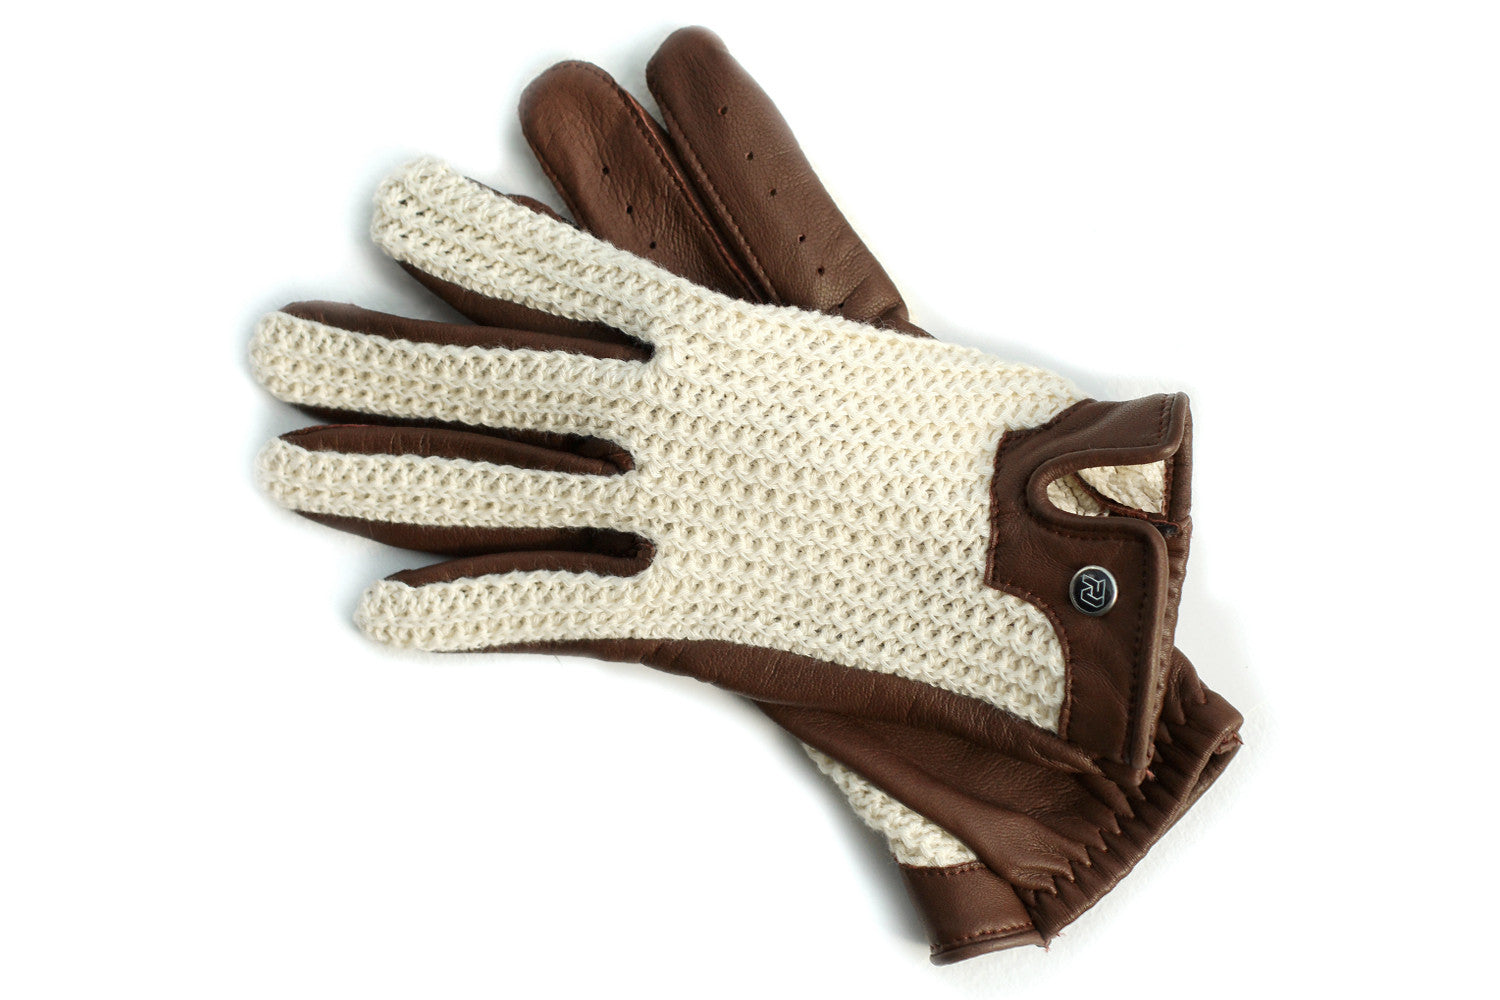 Driving gloves youtube - Stringback Driving Gloves